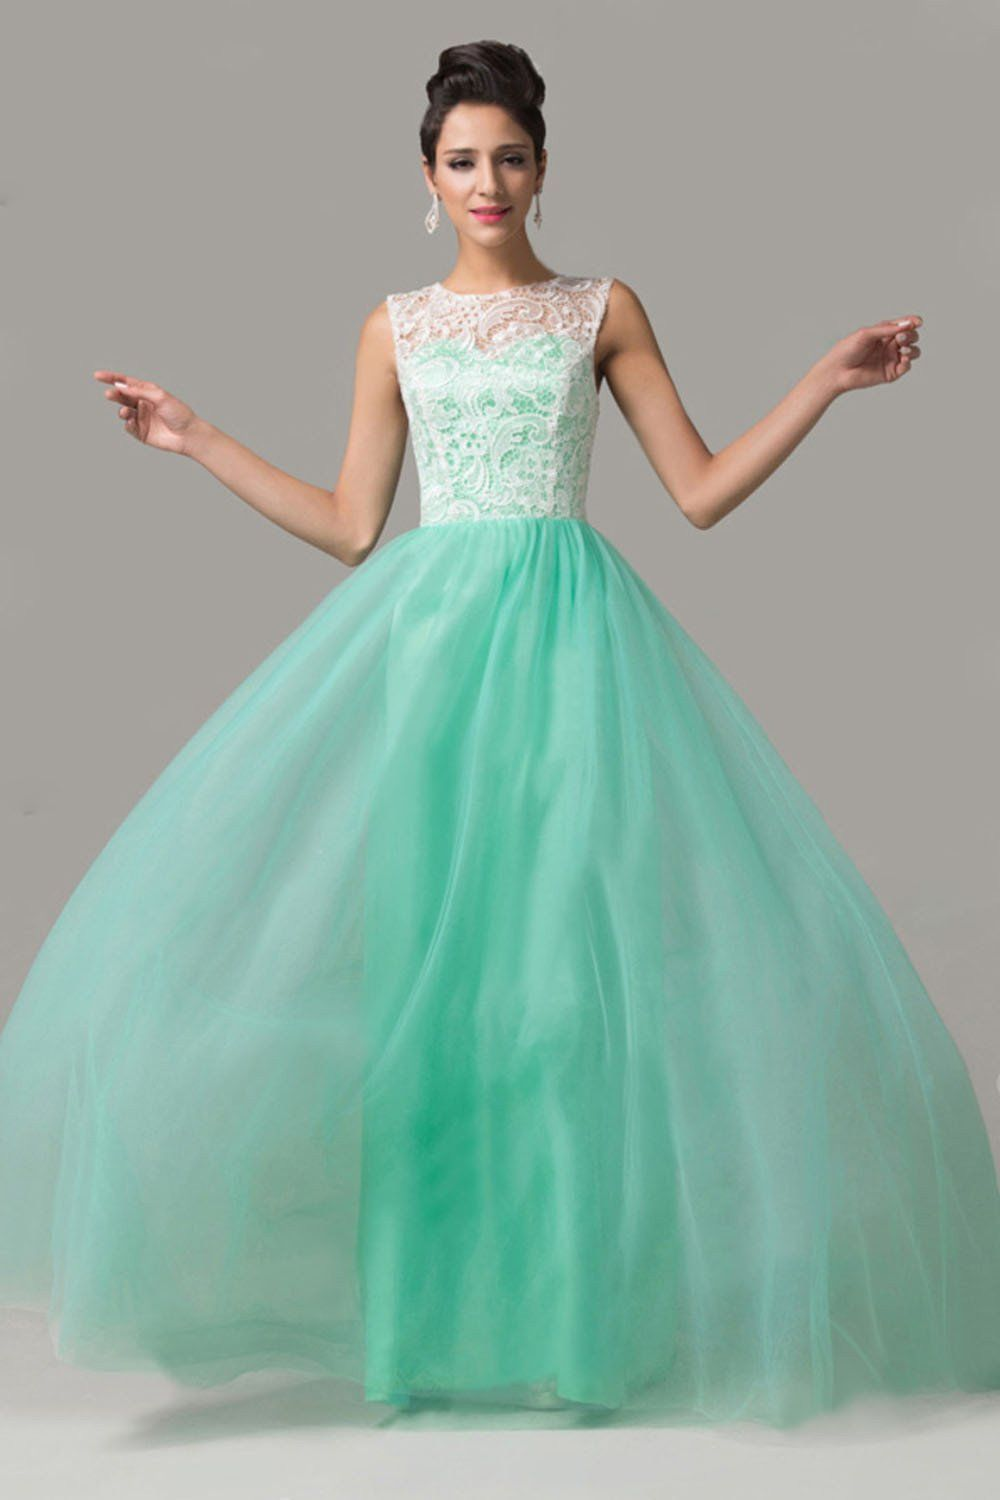 Cap Sleeves Mint Green Lace Long Prom Dresses ED0861 | Green lace ...